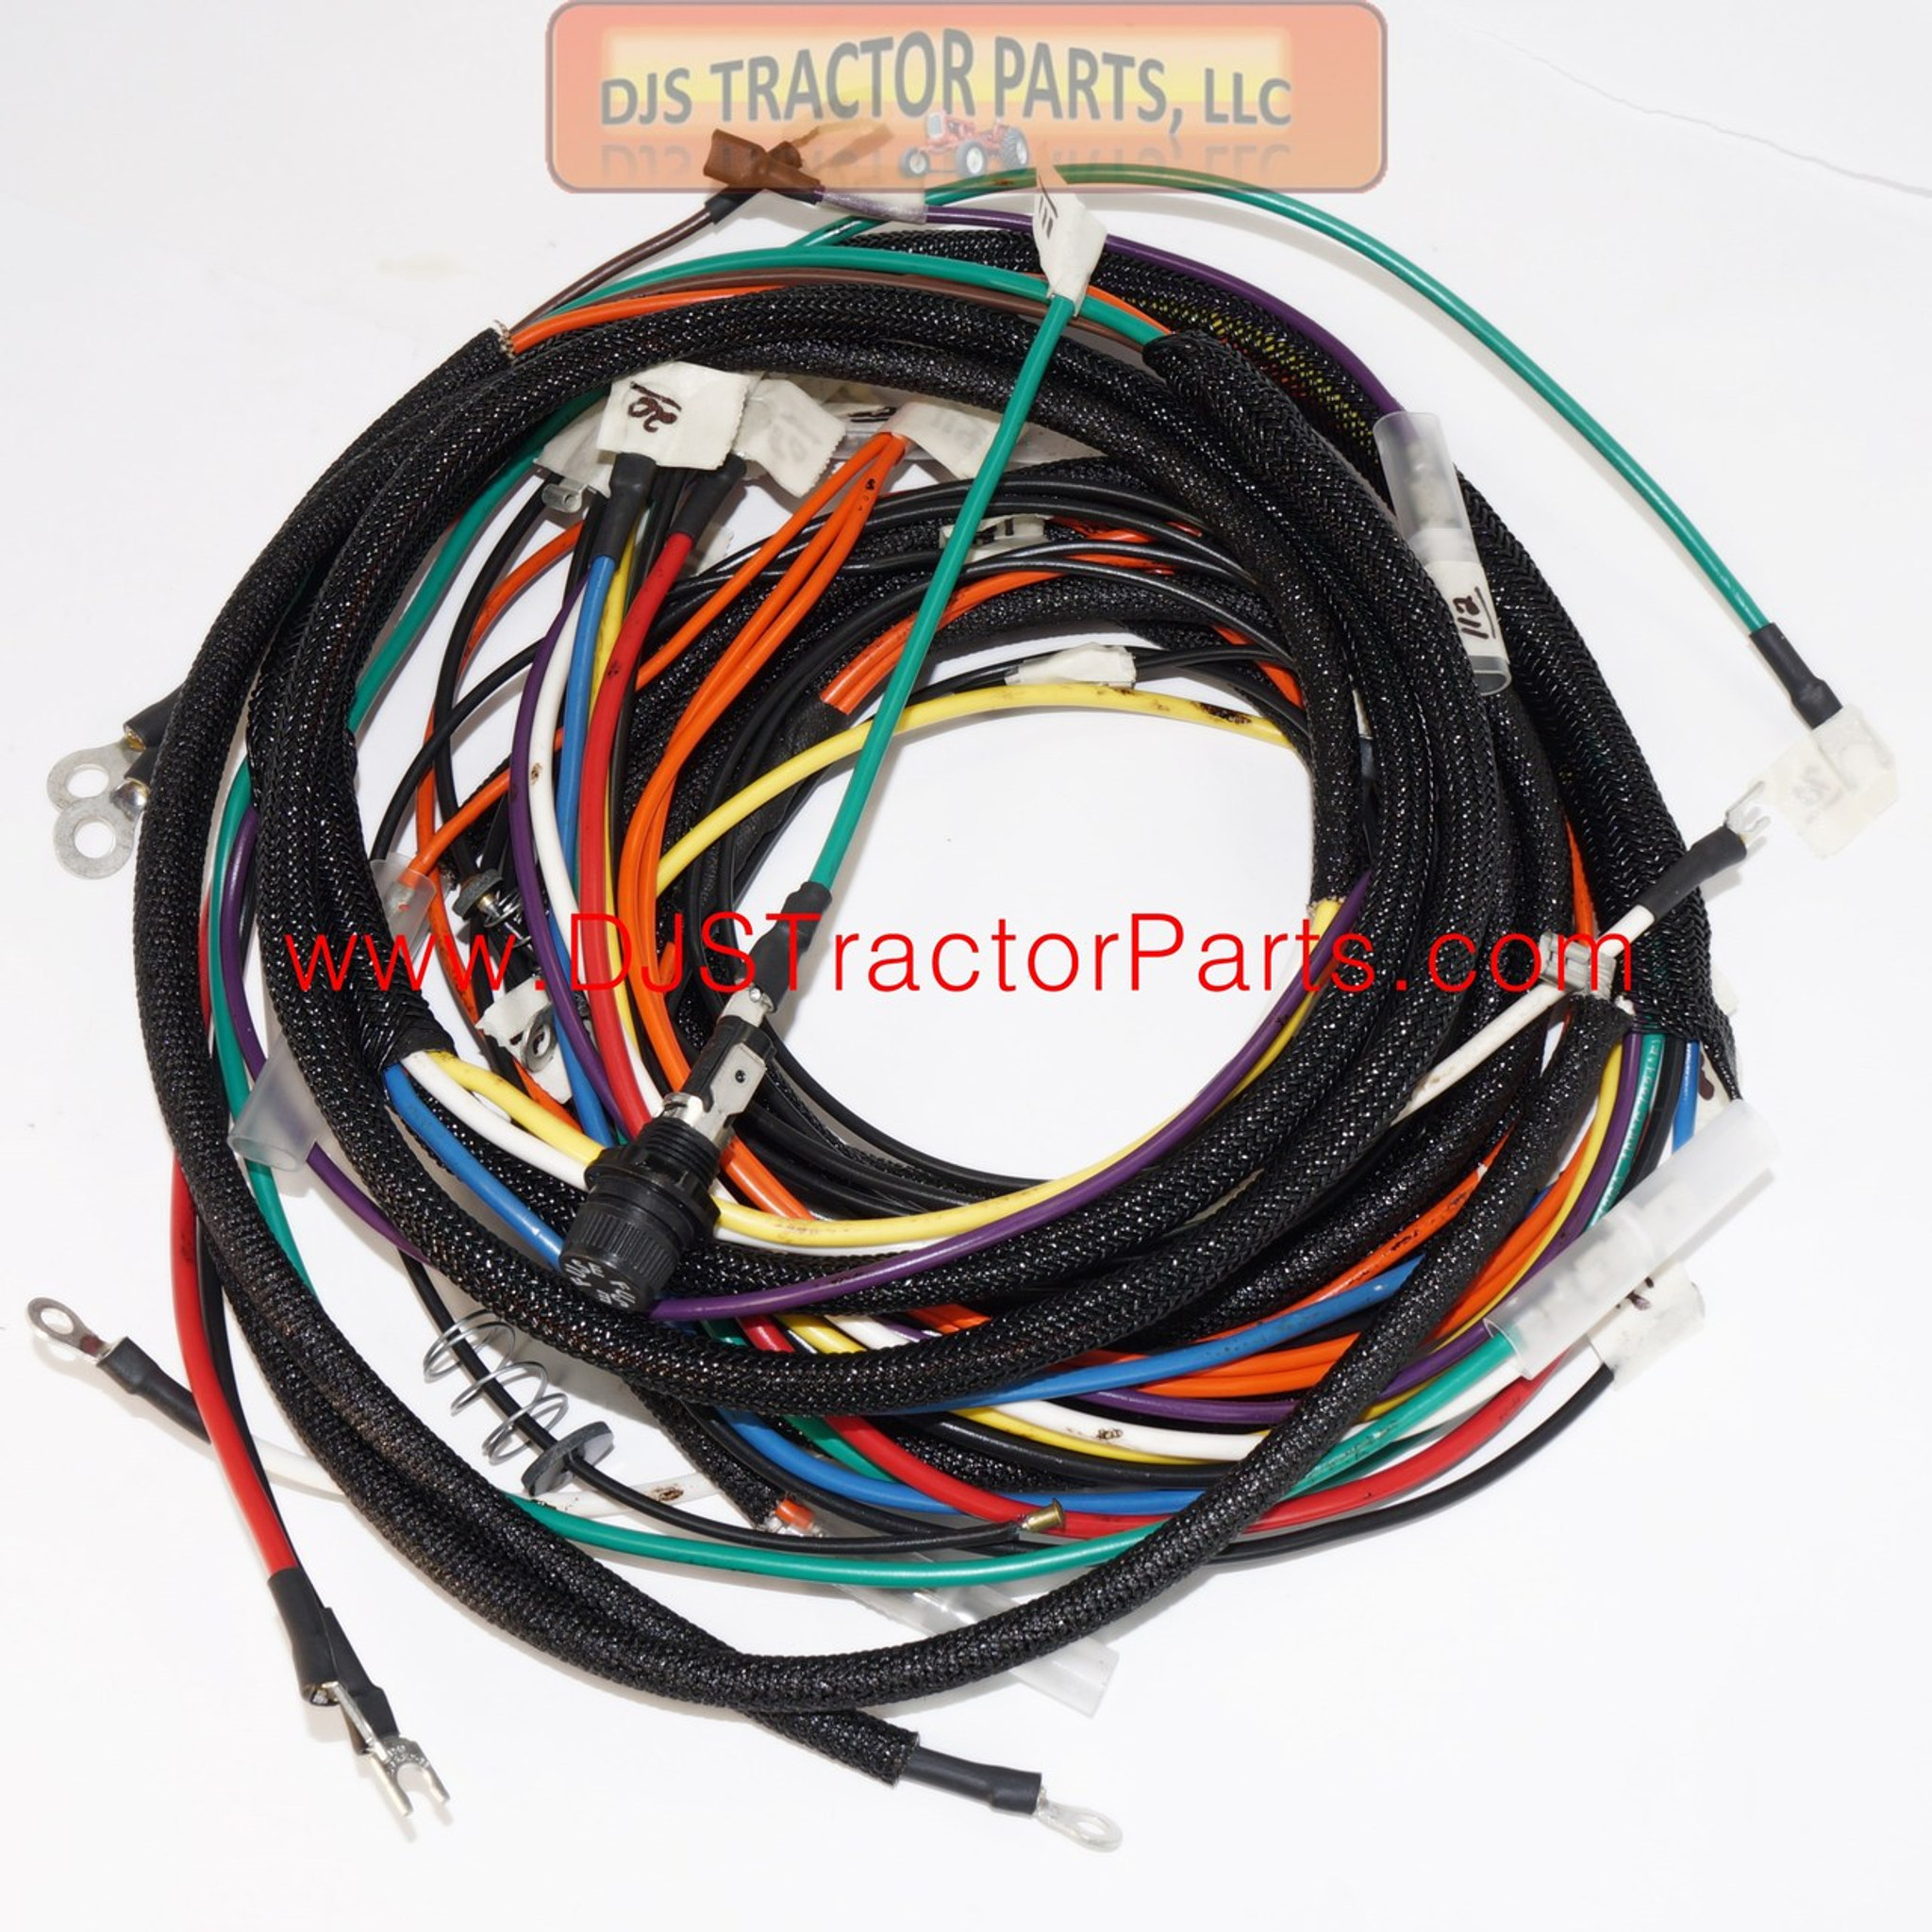 1991 toyota pickup 4wd wiring locations with Jdm D16zc Engine Wiring Diagram on Jdm D16zc Engine Wiring Diagram as well Isuzu Trooper Fuse Box Wiring Diagram together with Allison Transmission Reverse Switch Location together with 304519 Where Bank 1 Sensor 1 A additionally P 0900c1528007729a.